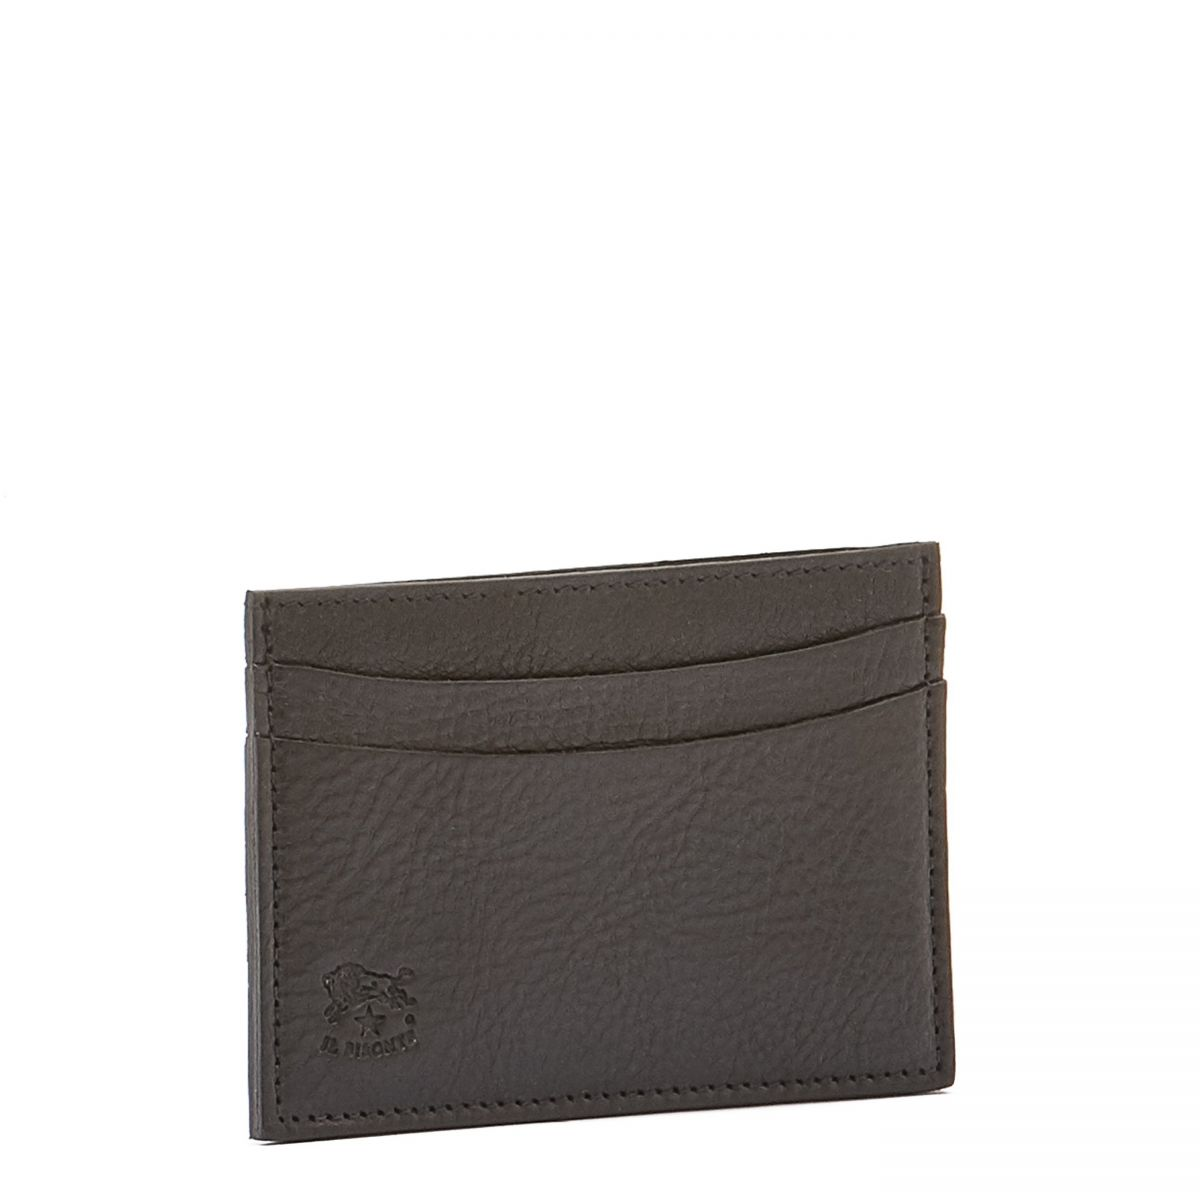 Card Case  in Cowhide Double Leather SCC019 color Black | Details